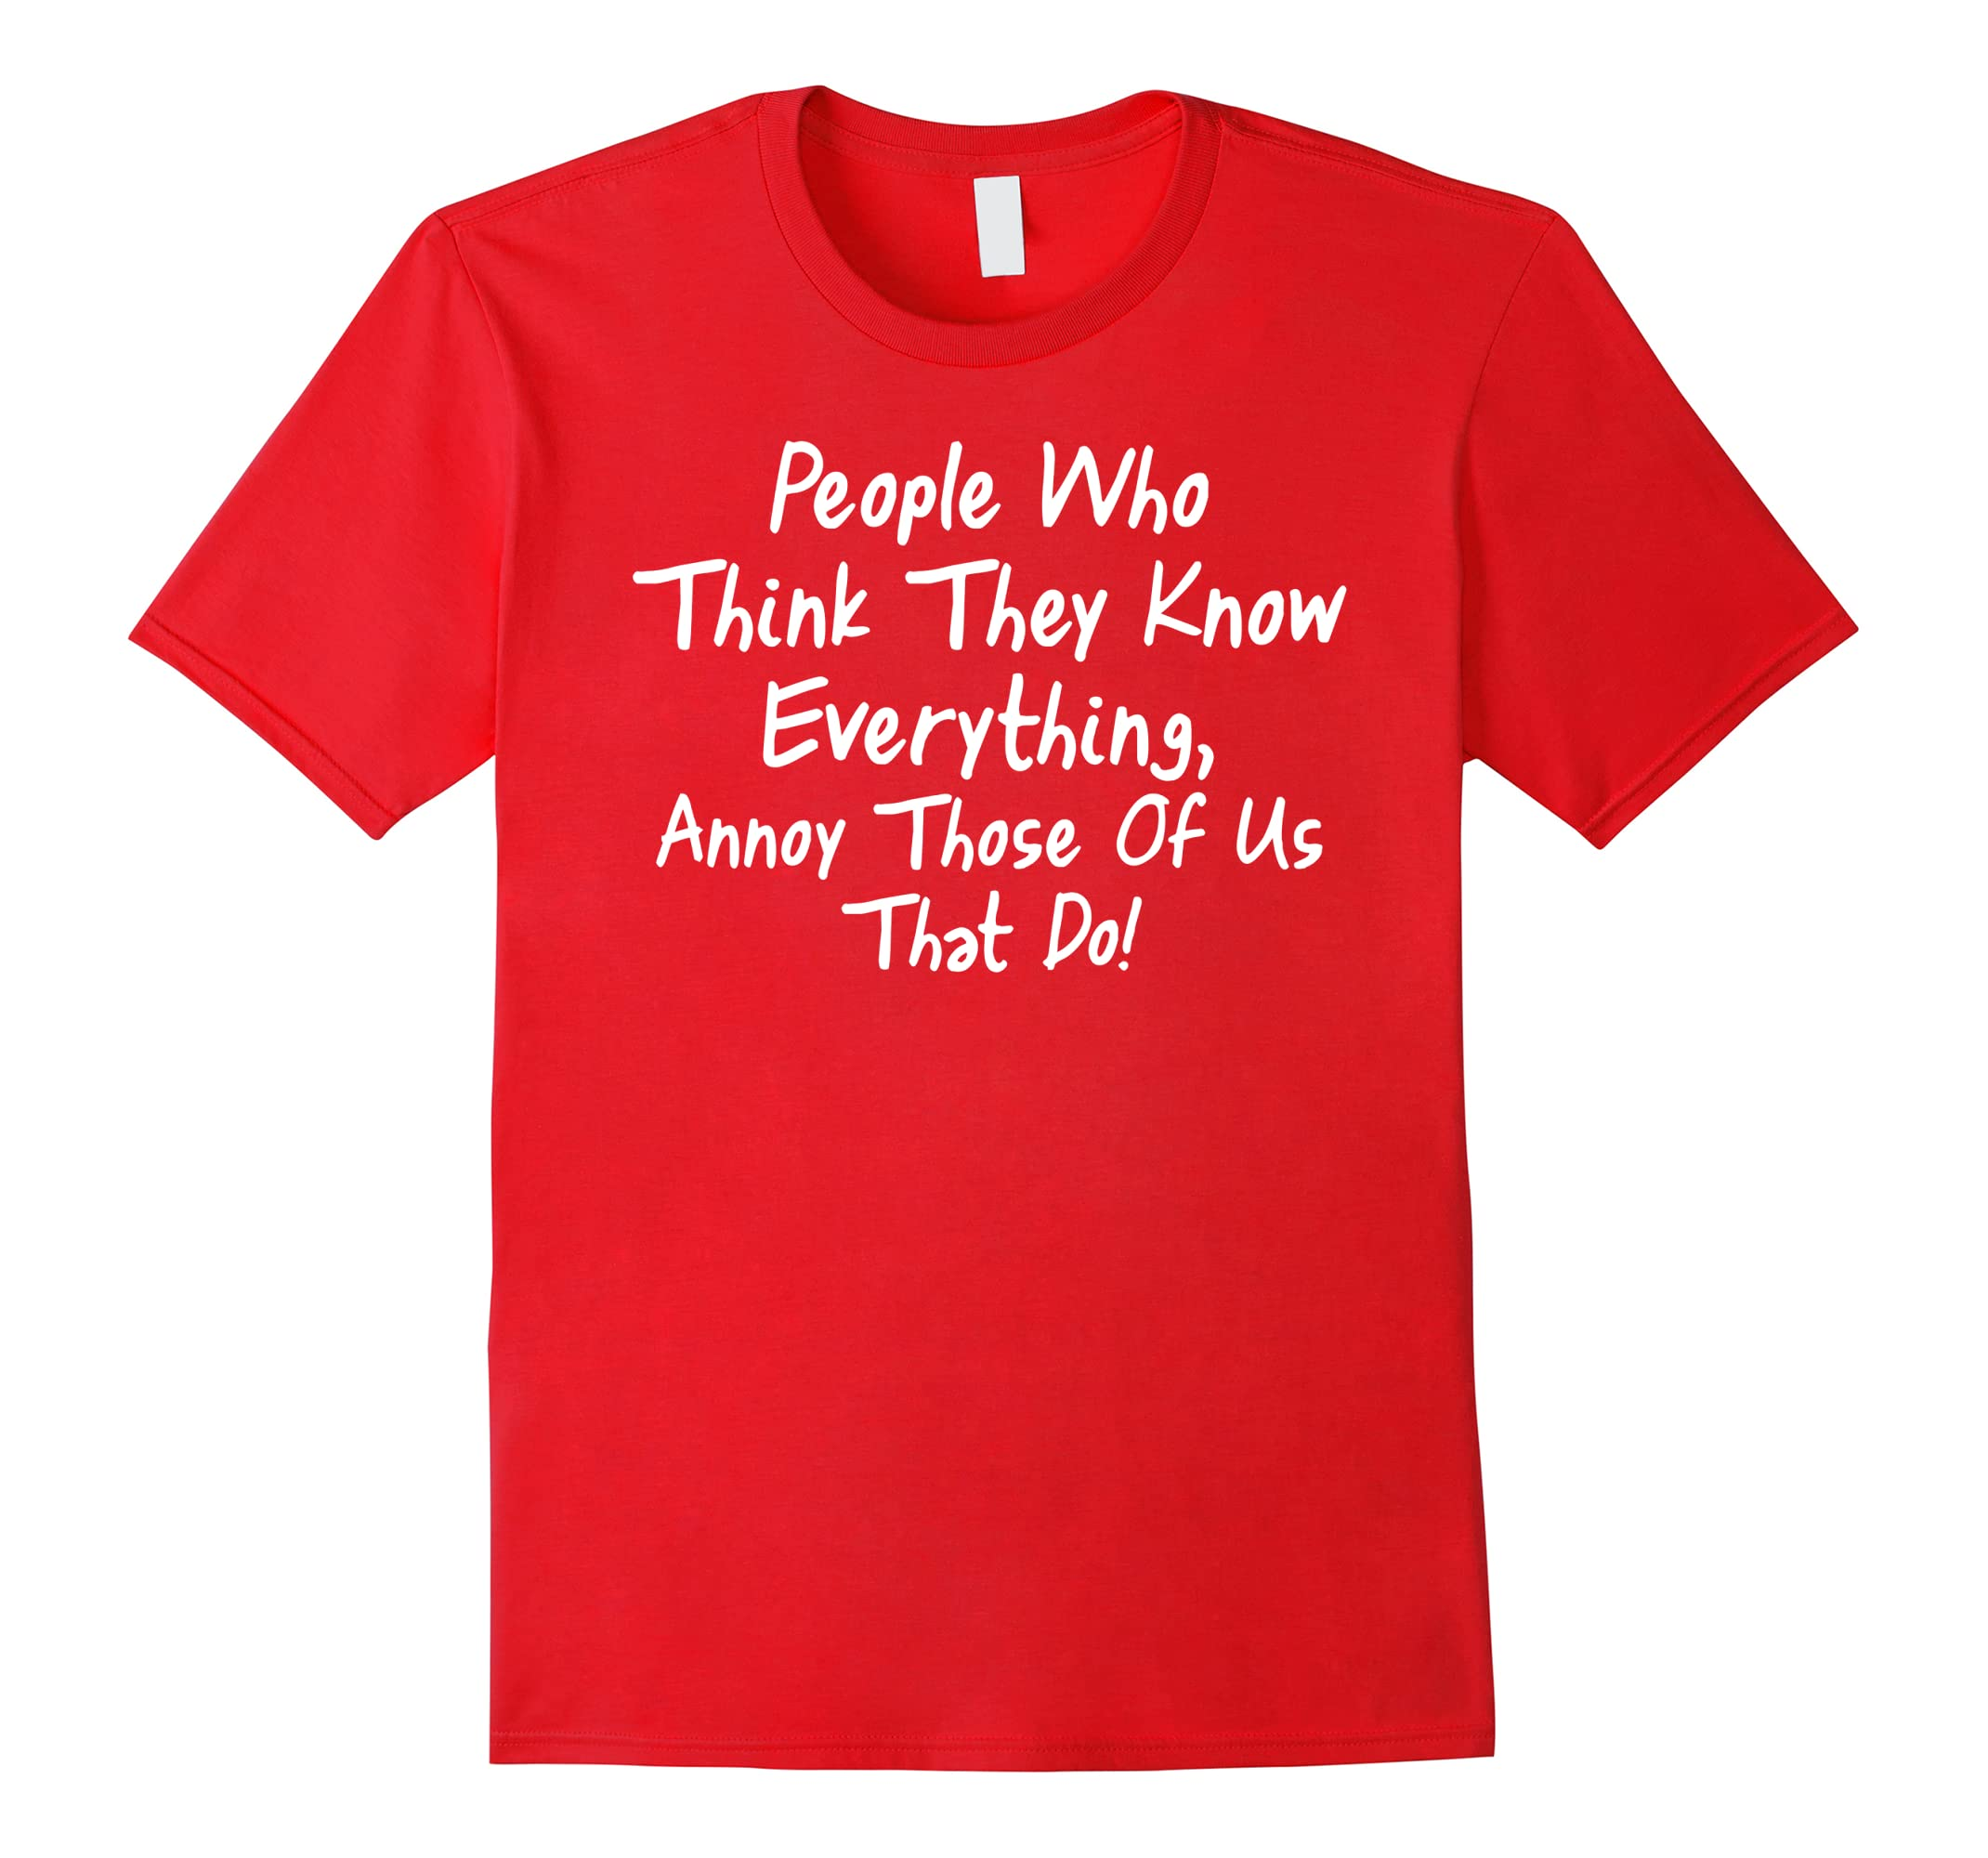 Funny sarcastic Shirt People everything-Xalozy